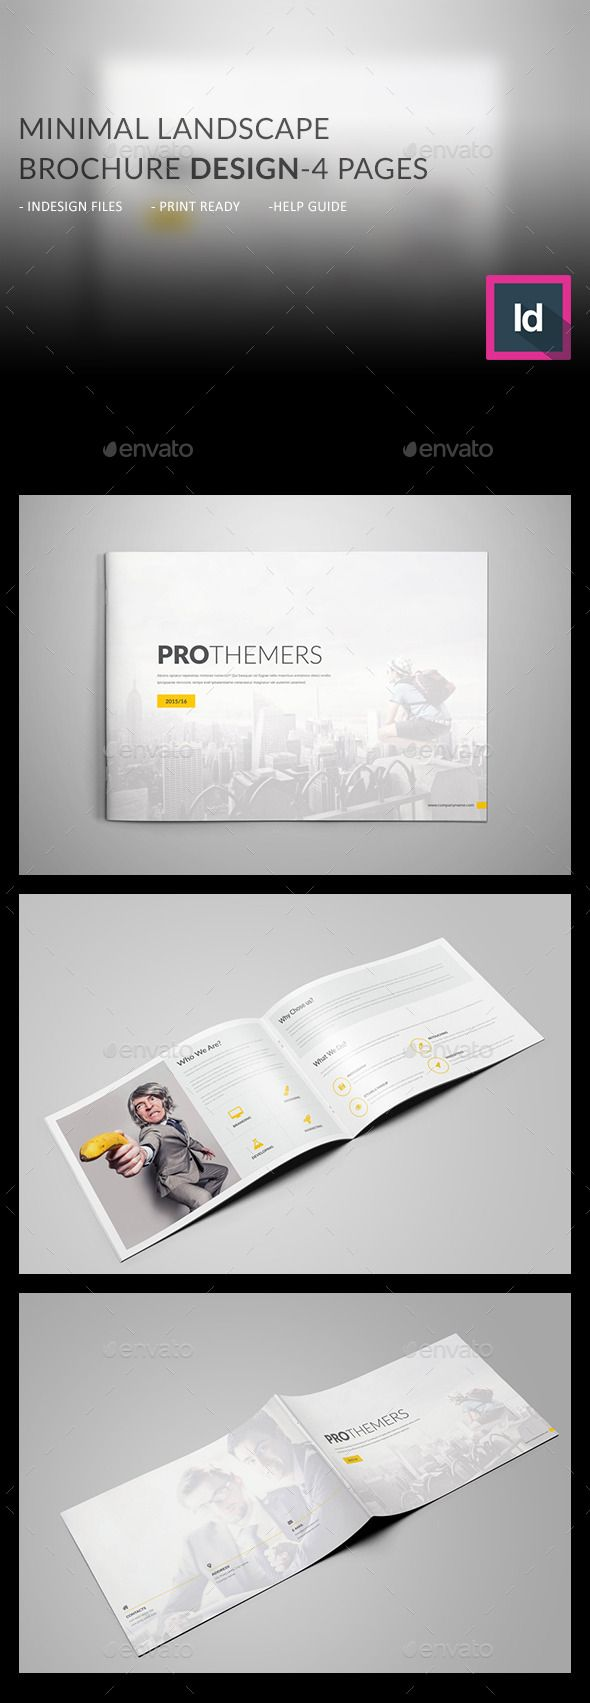 4 pages landscape brochure template design download http